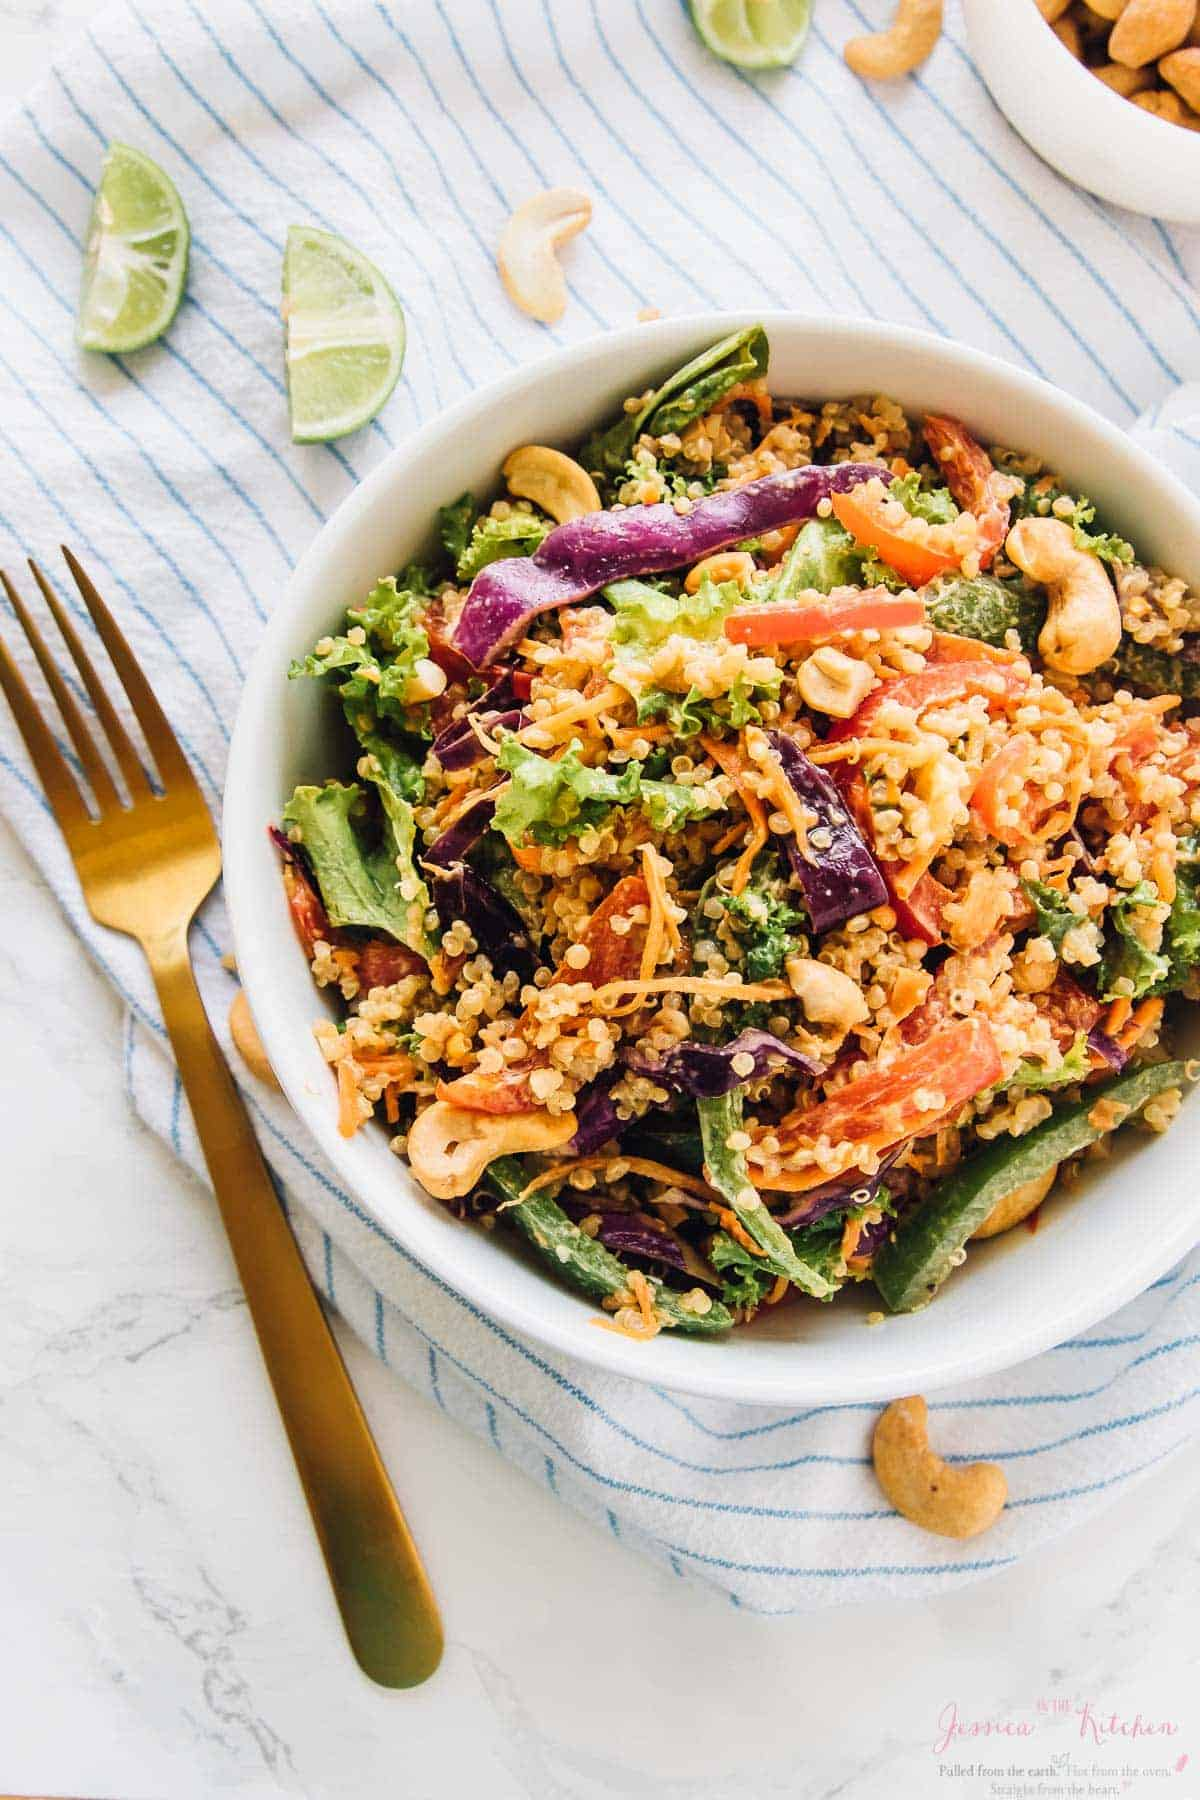 Cashew thai quinoa salad in a white bowl with a gold spoon and lime wedges on the side.